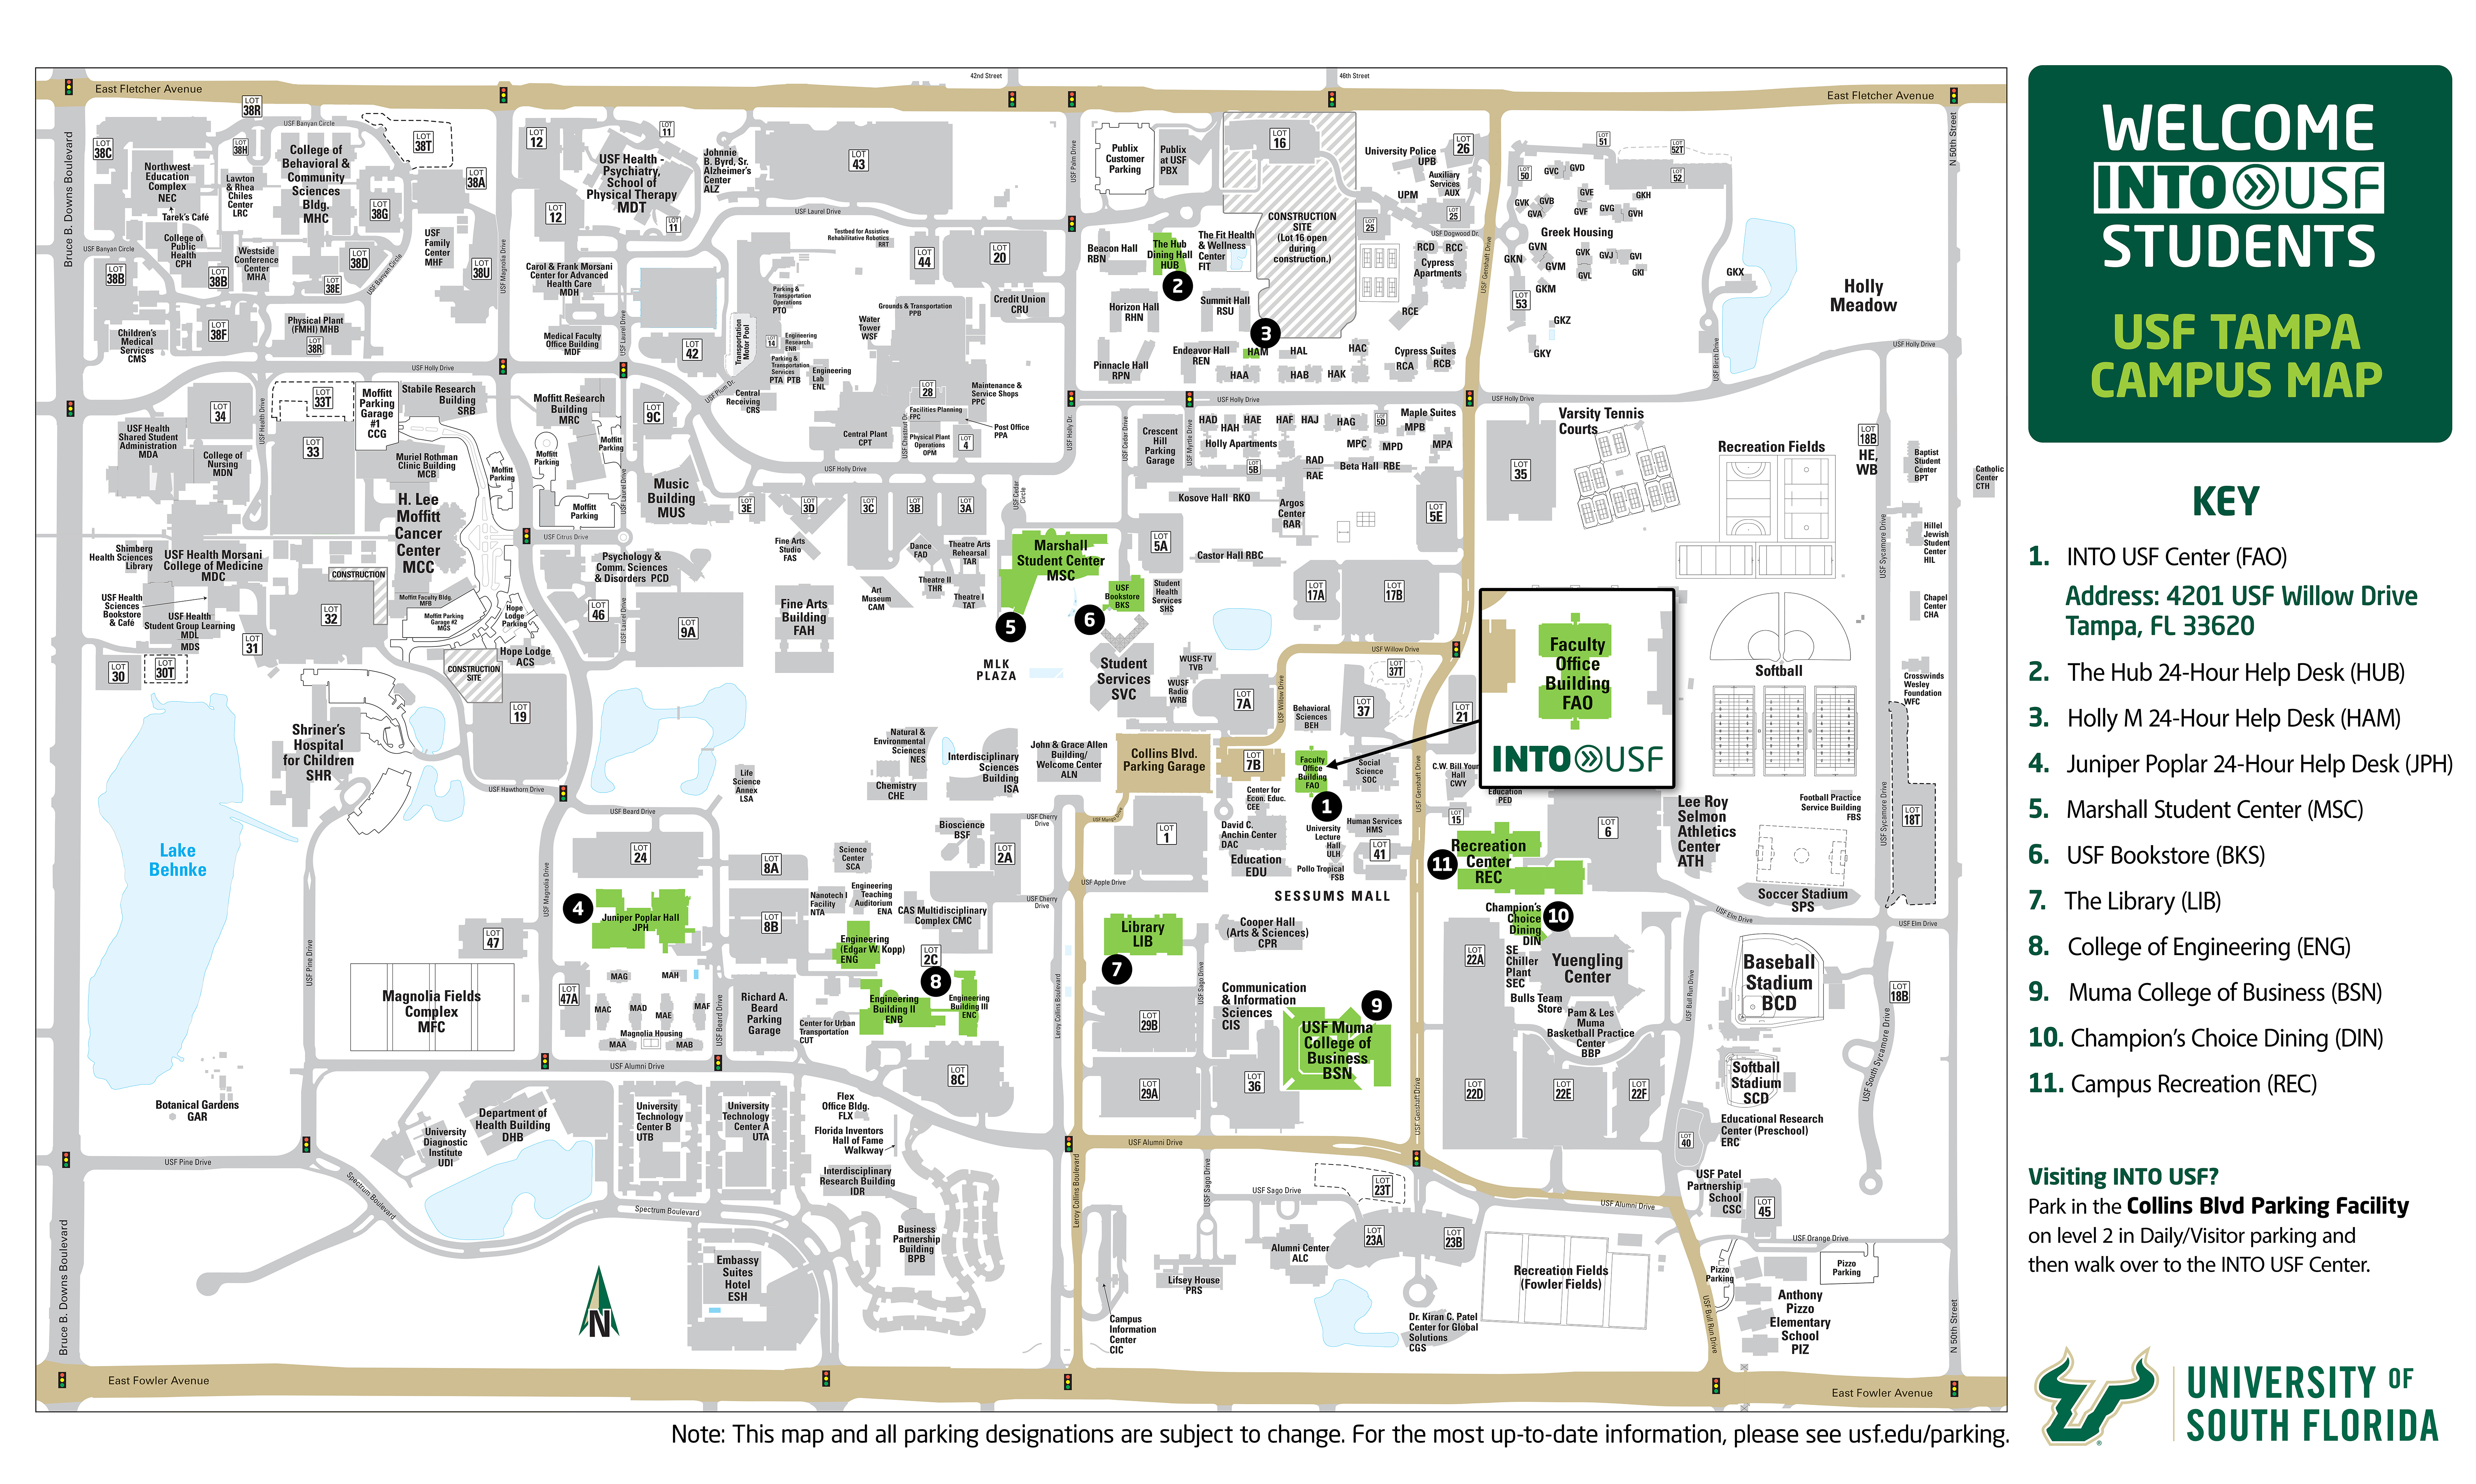 university of south florida campus map University Of South Florida Campus Map Map Of The World university of south florida campus map